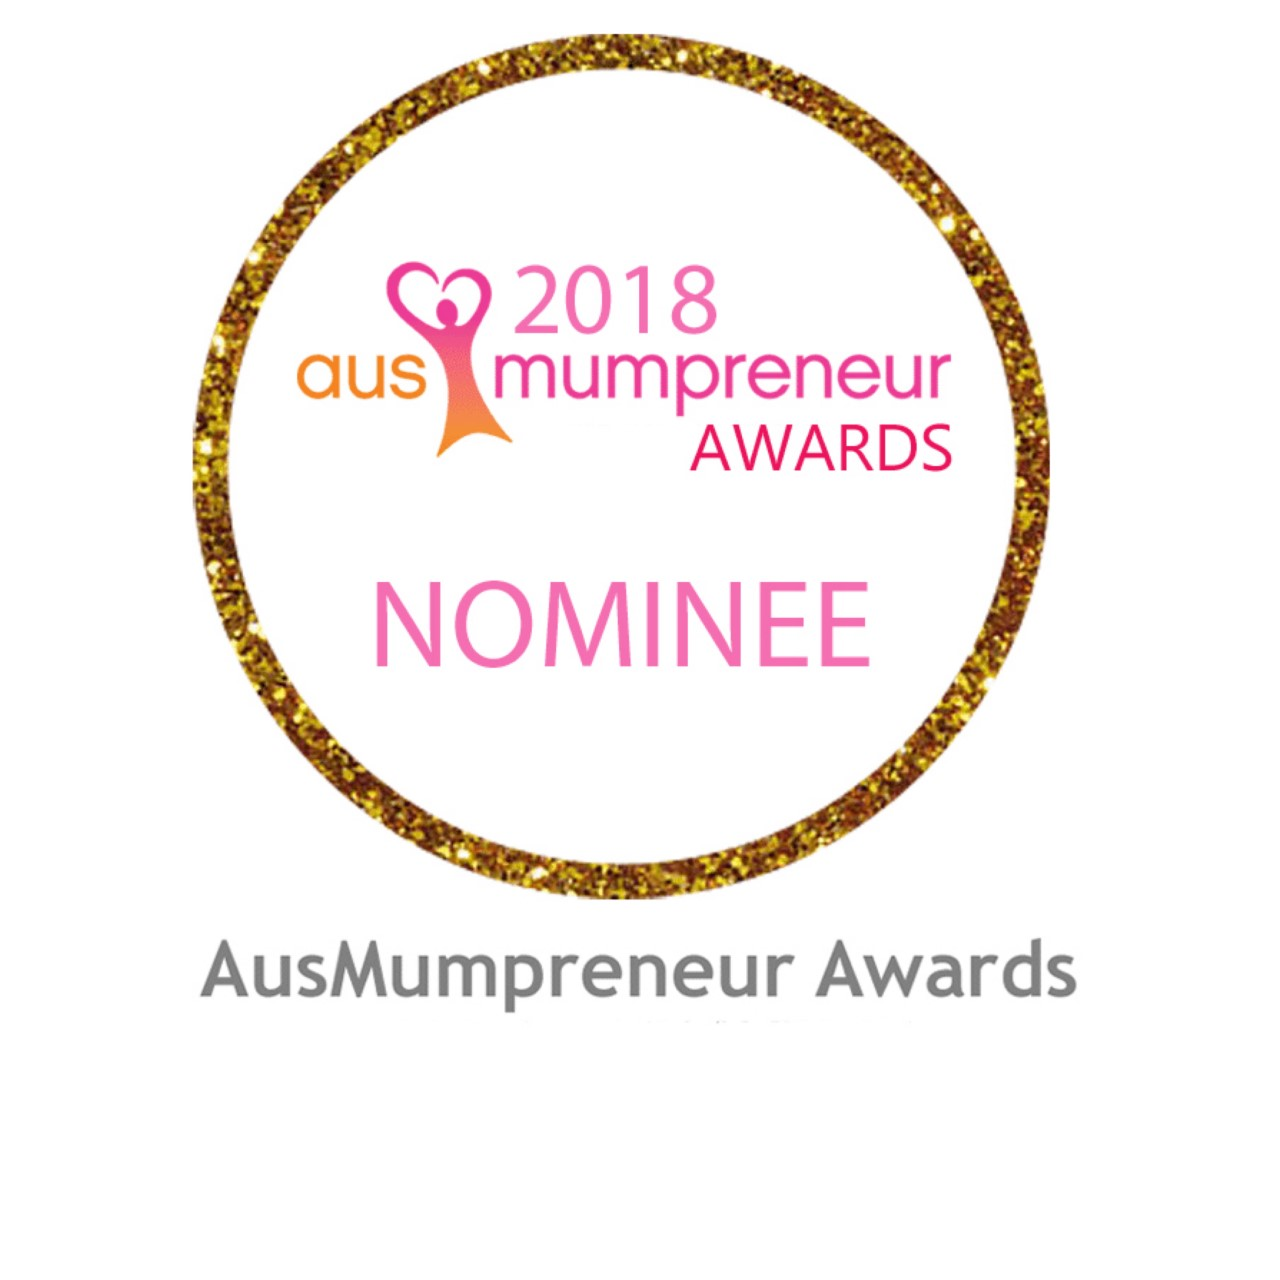 AusMumpreneur Awards 2018